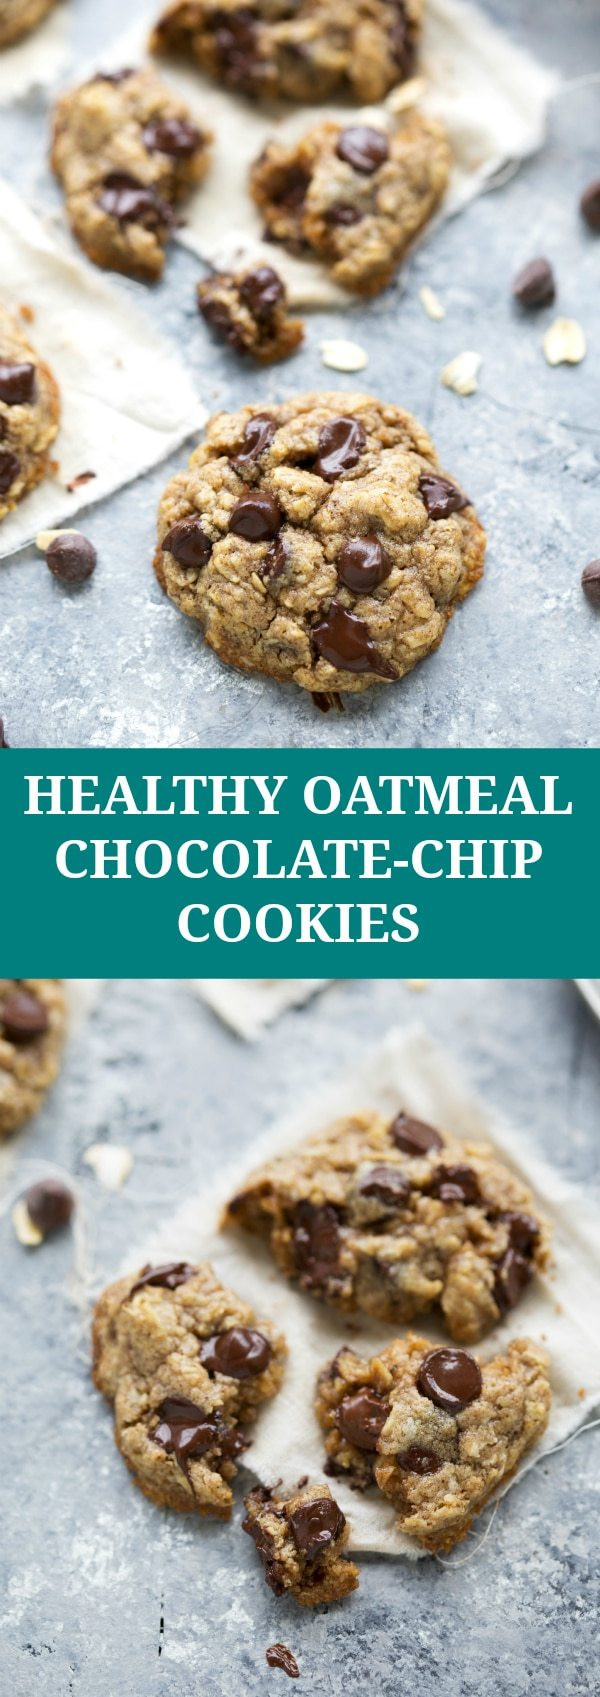 Chocolate Chip Oatmeal Cookies Healthy  The BEST healthy oatmeal chocolate chip cookies Chelsea